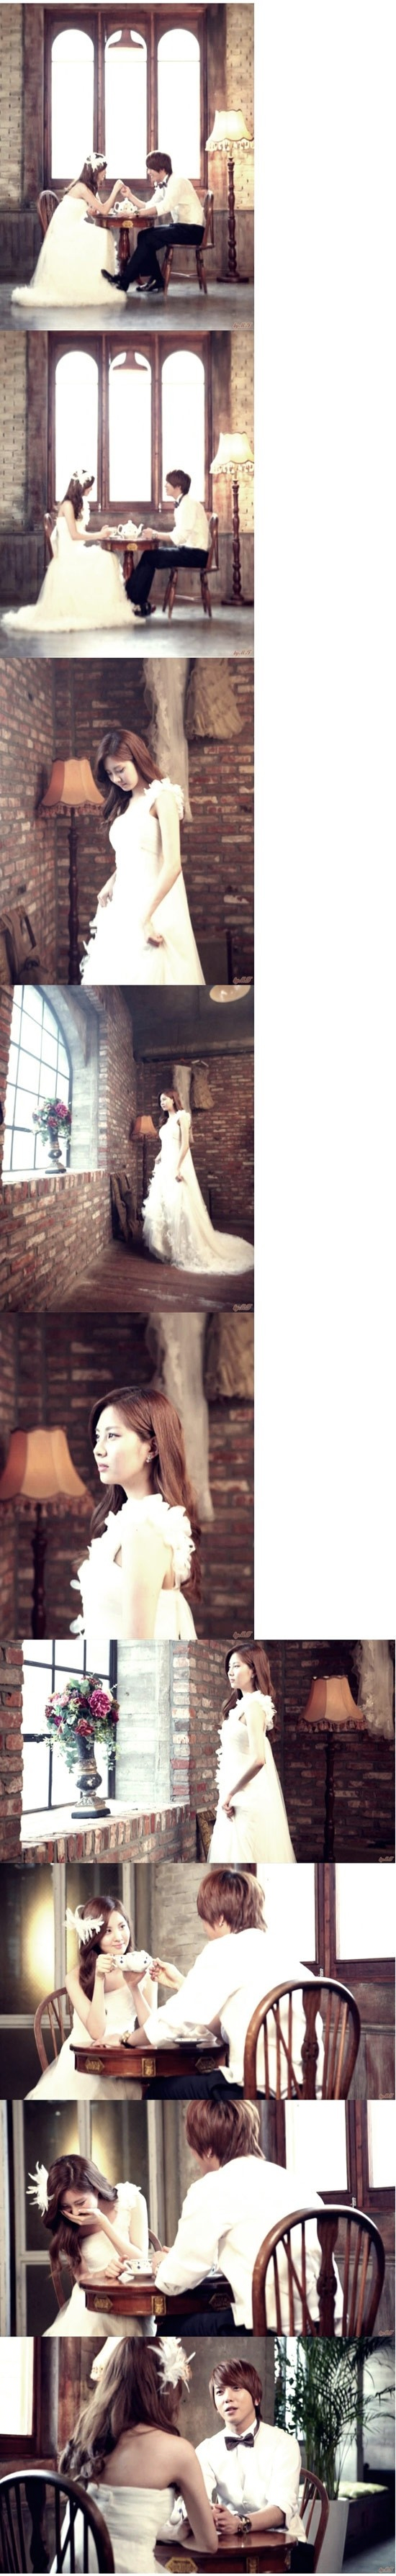 Wedding Photo in 1 Pic Watch Goguma Couple Again @ http://wgmhammer.blogspot.com/2014/07/wgm-goguma-couple-eng-sub.html